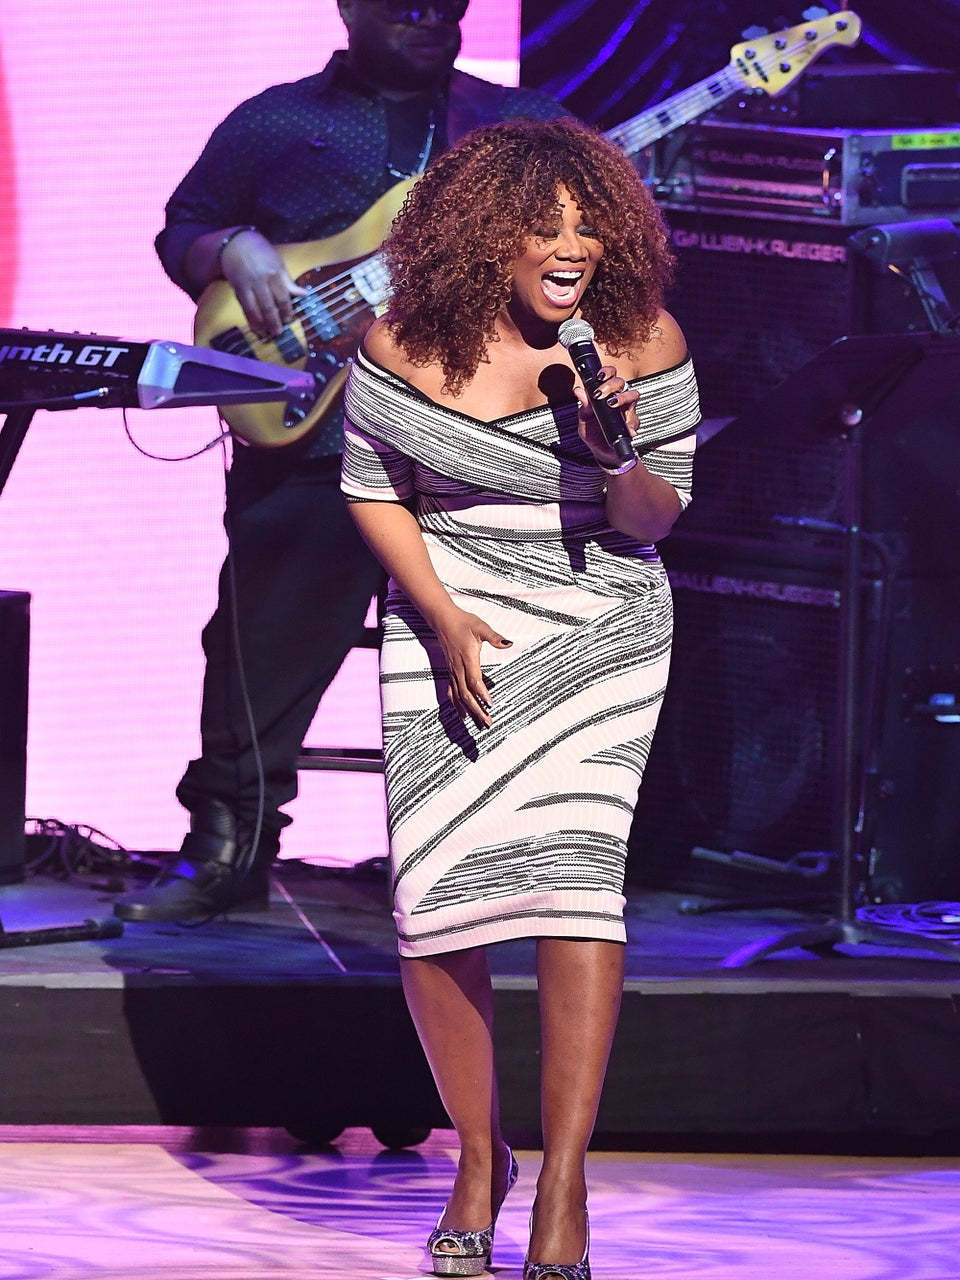 Yolanda Adams Looks Forward To Worshipping with South Africans This Weekend